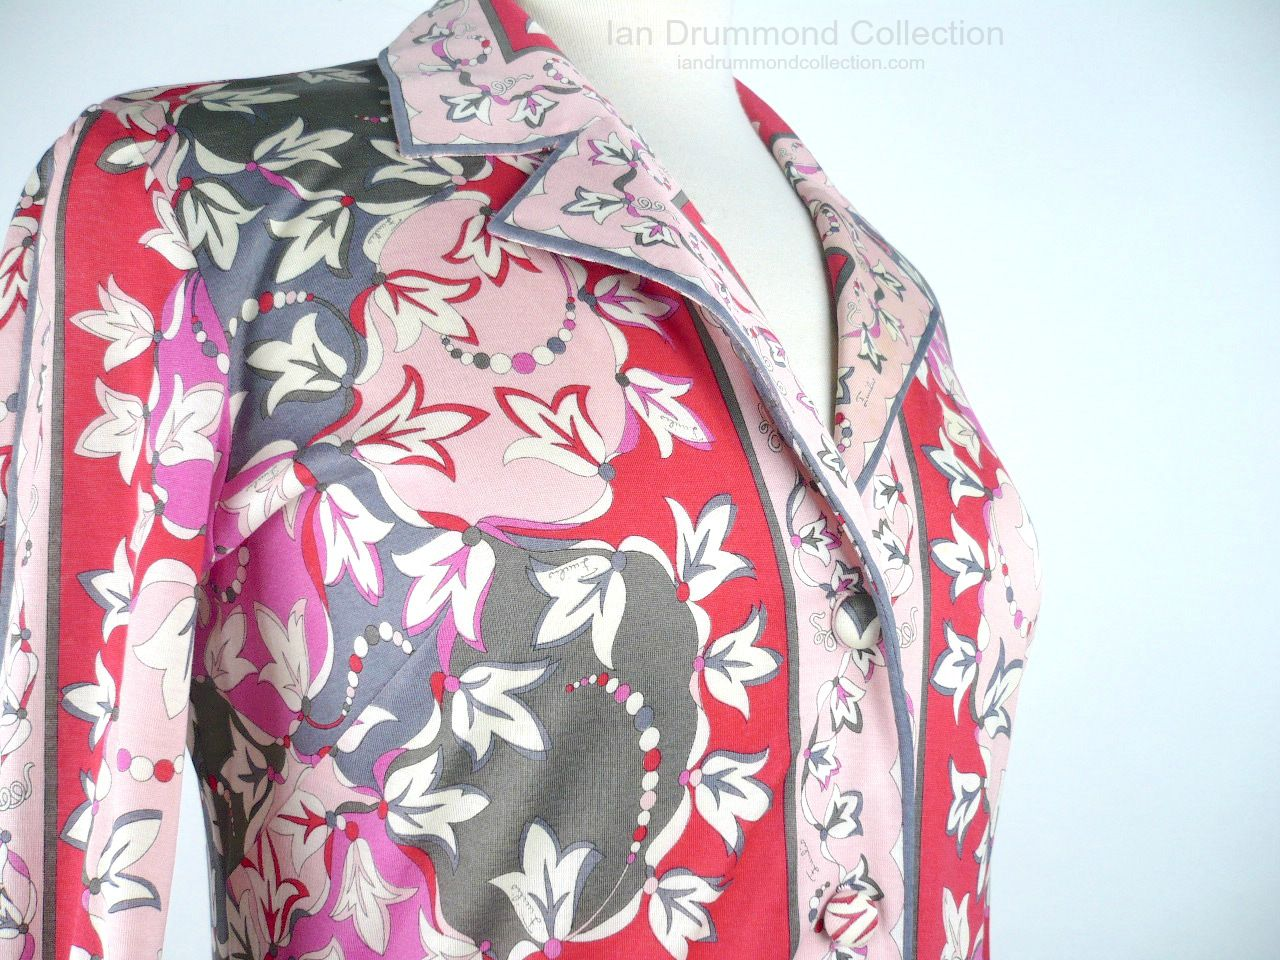 Ian Drummon Collection Toronto Vintage Clothing Show Pucci Blouse